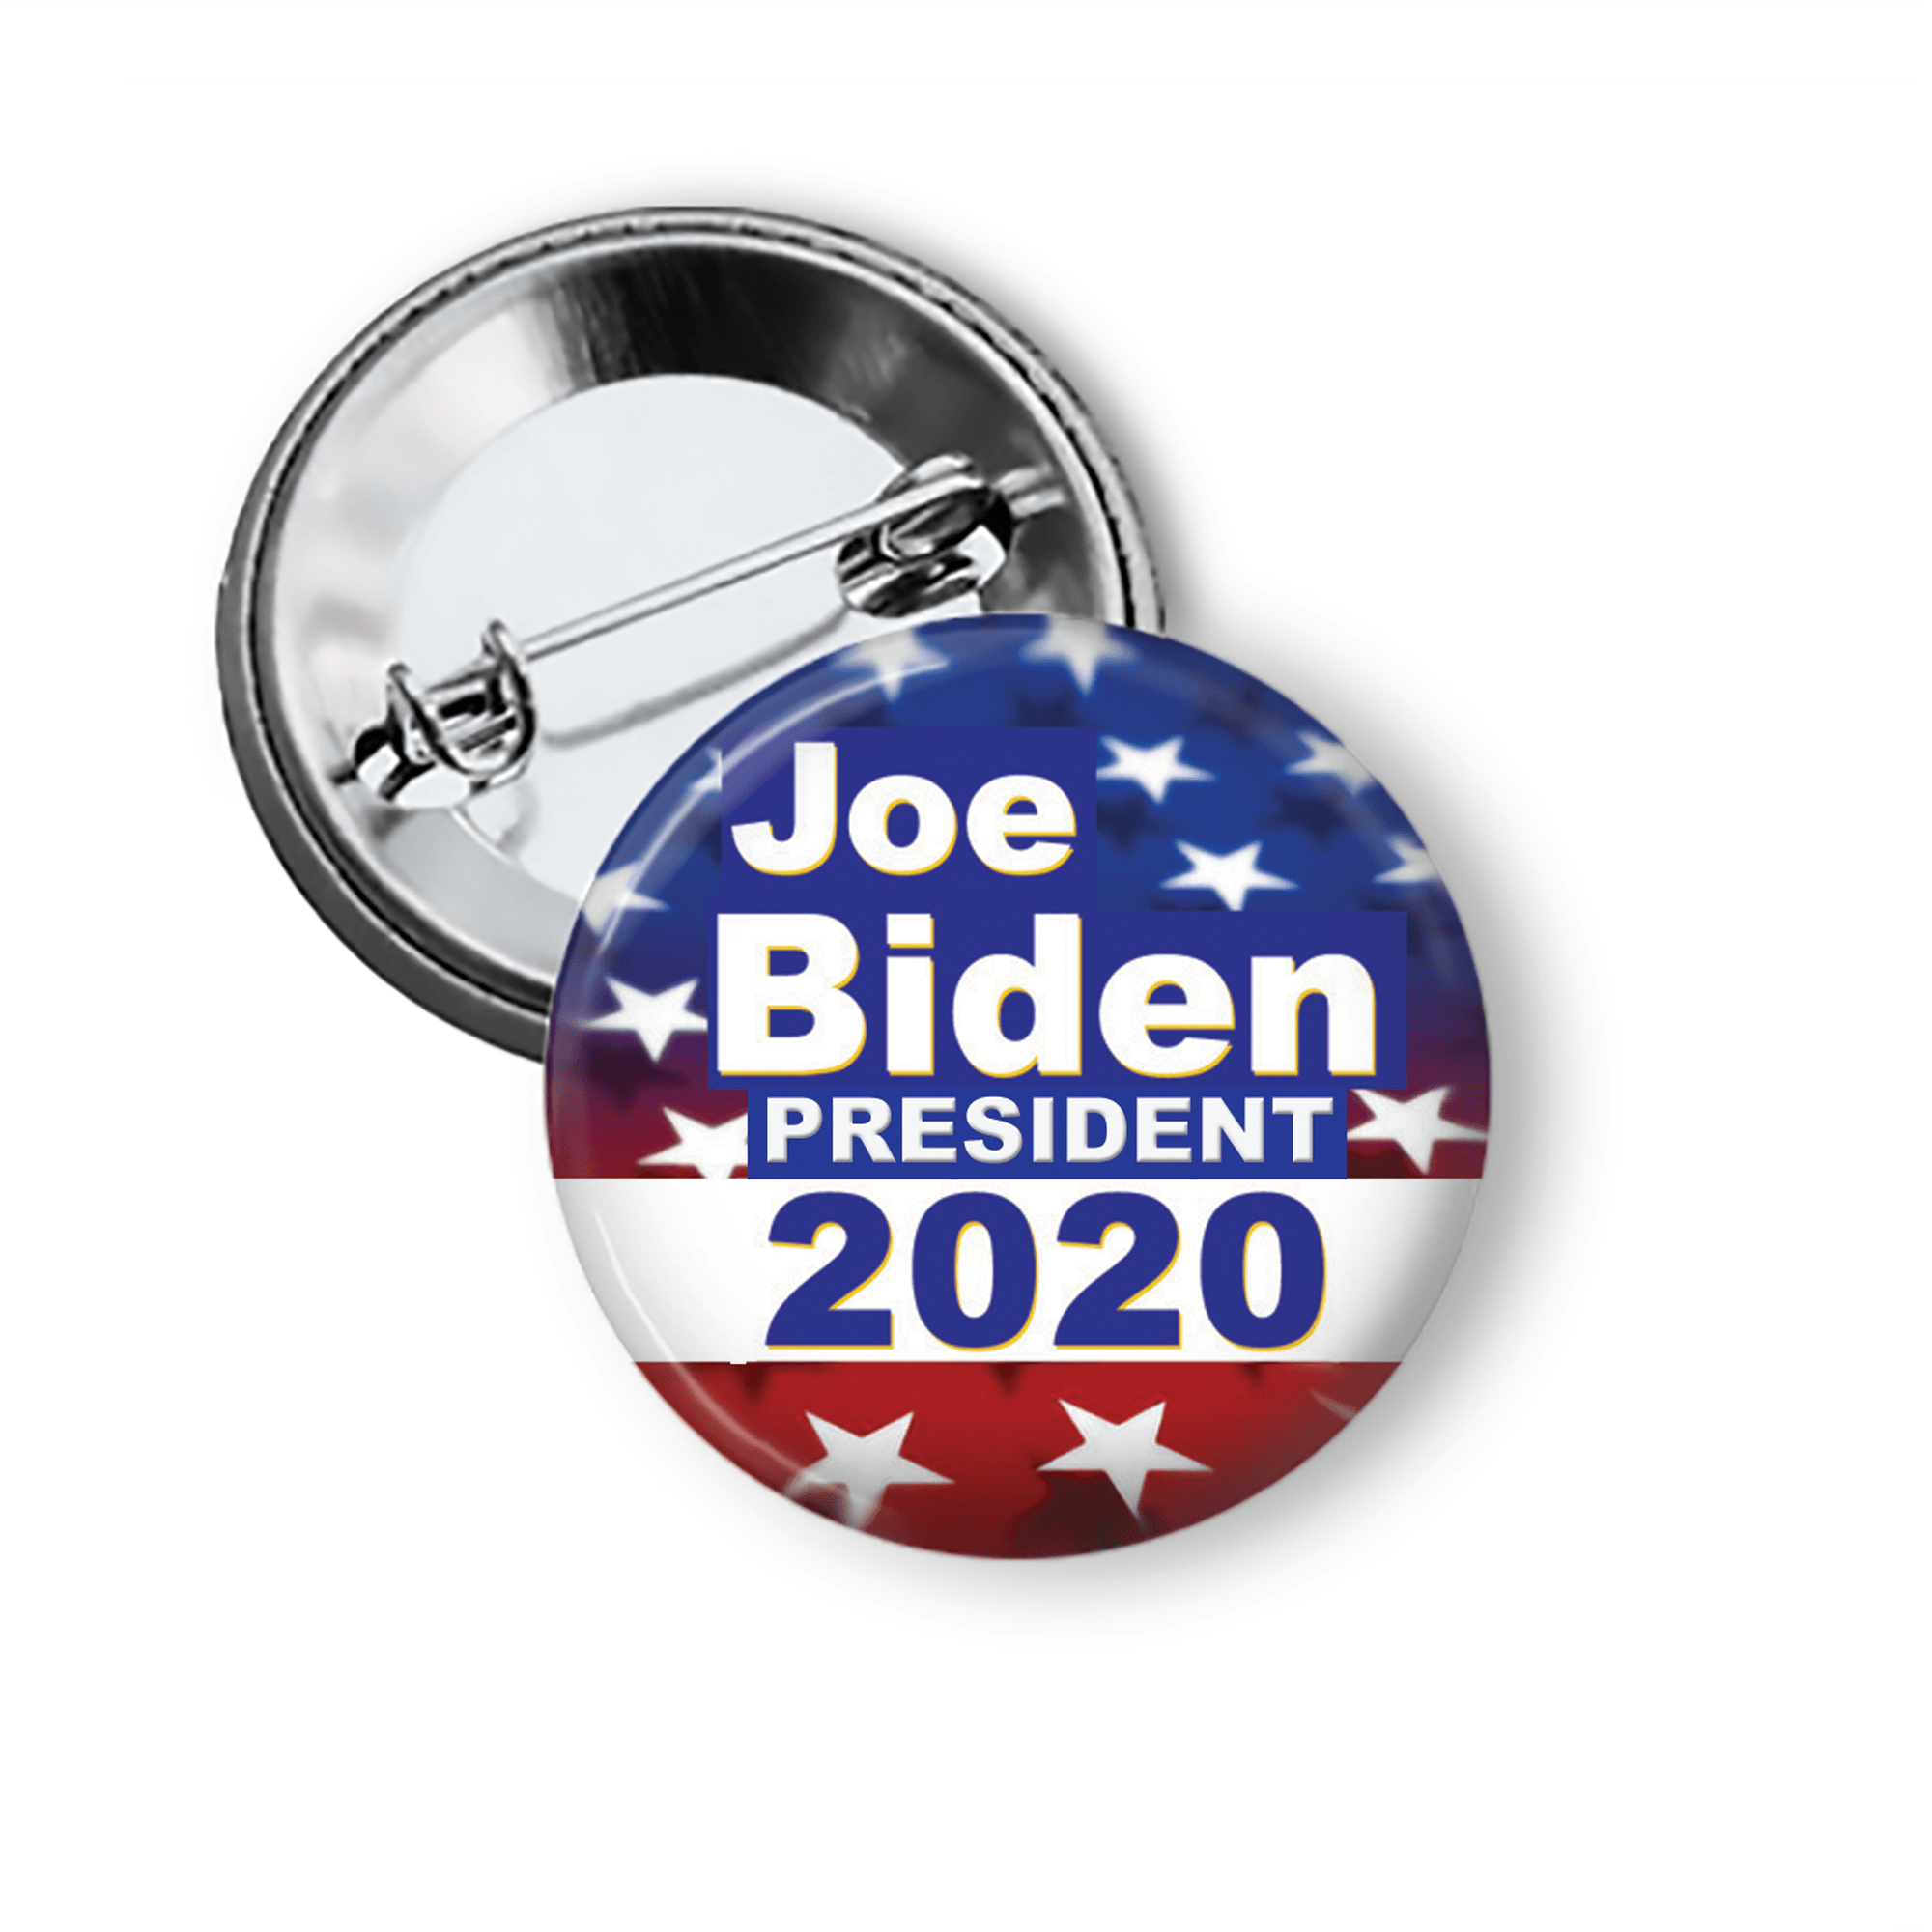 Joe Biden 2020 Campaign Button Pins Buttons For the People